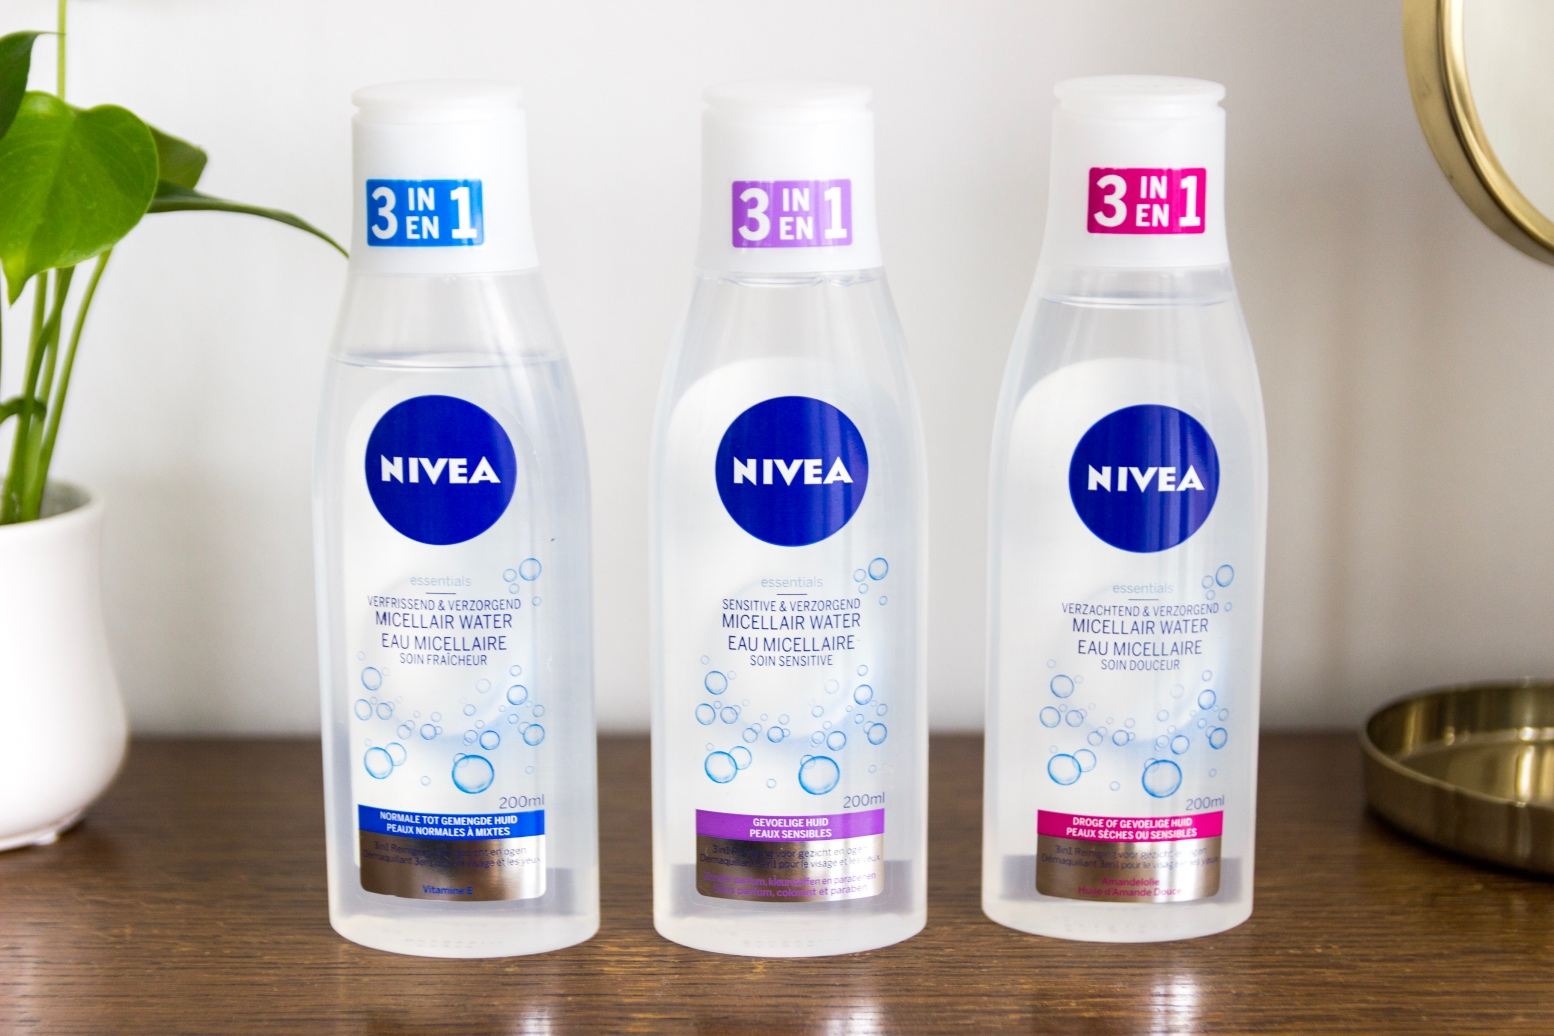 NIVEA Micellair Water